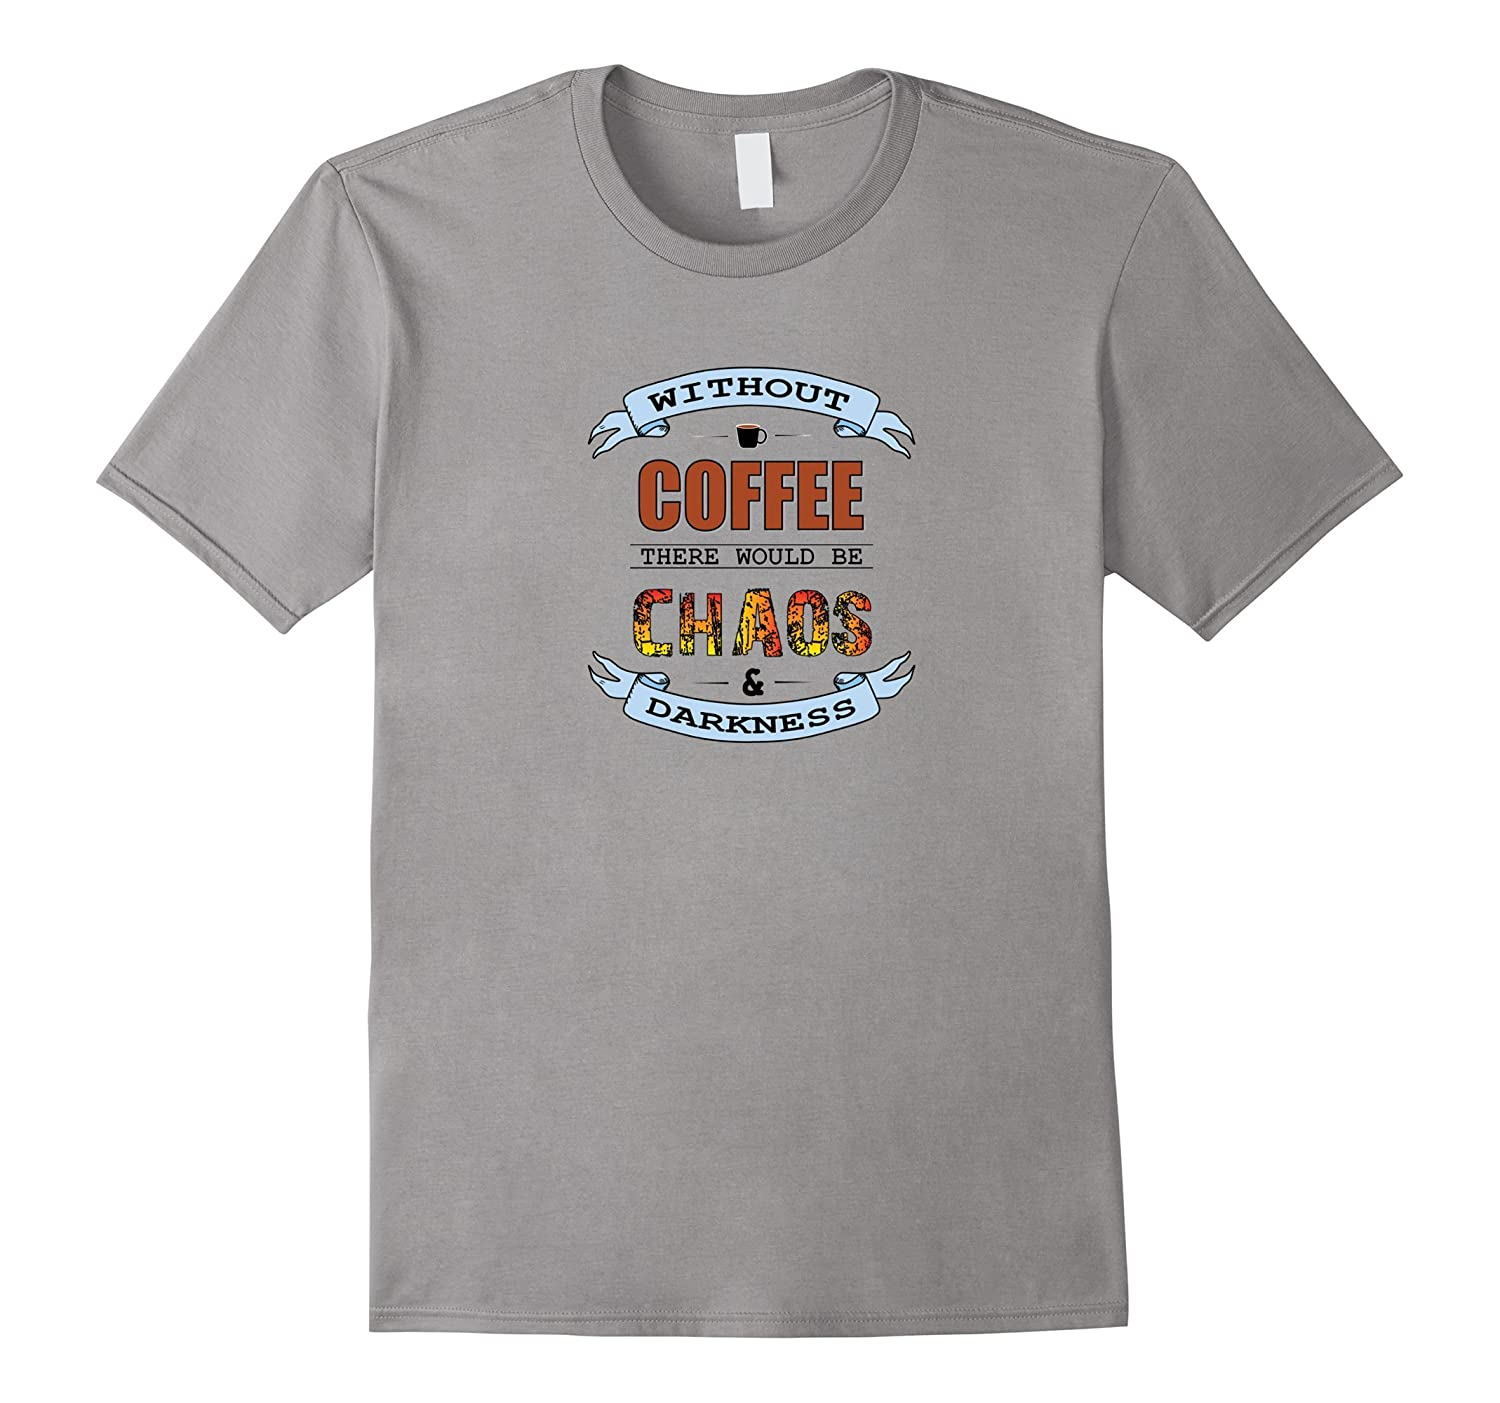 Without Coffee There Would Be Chaos and Darkness T-Shirt-Art